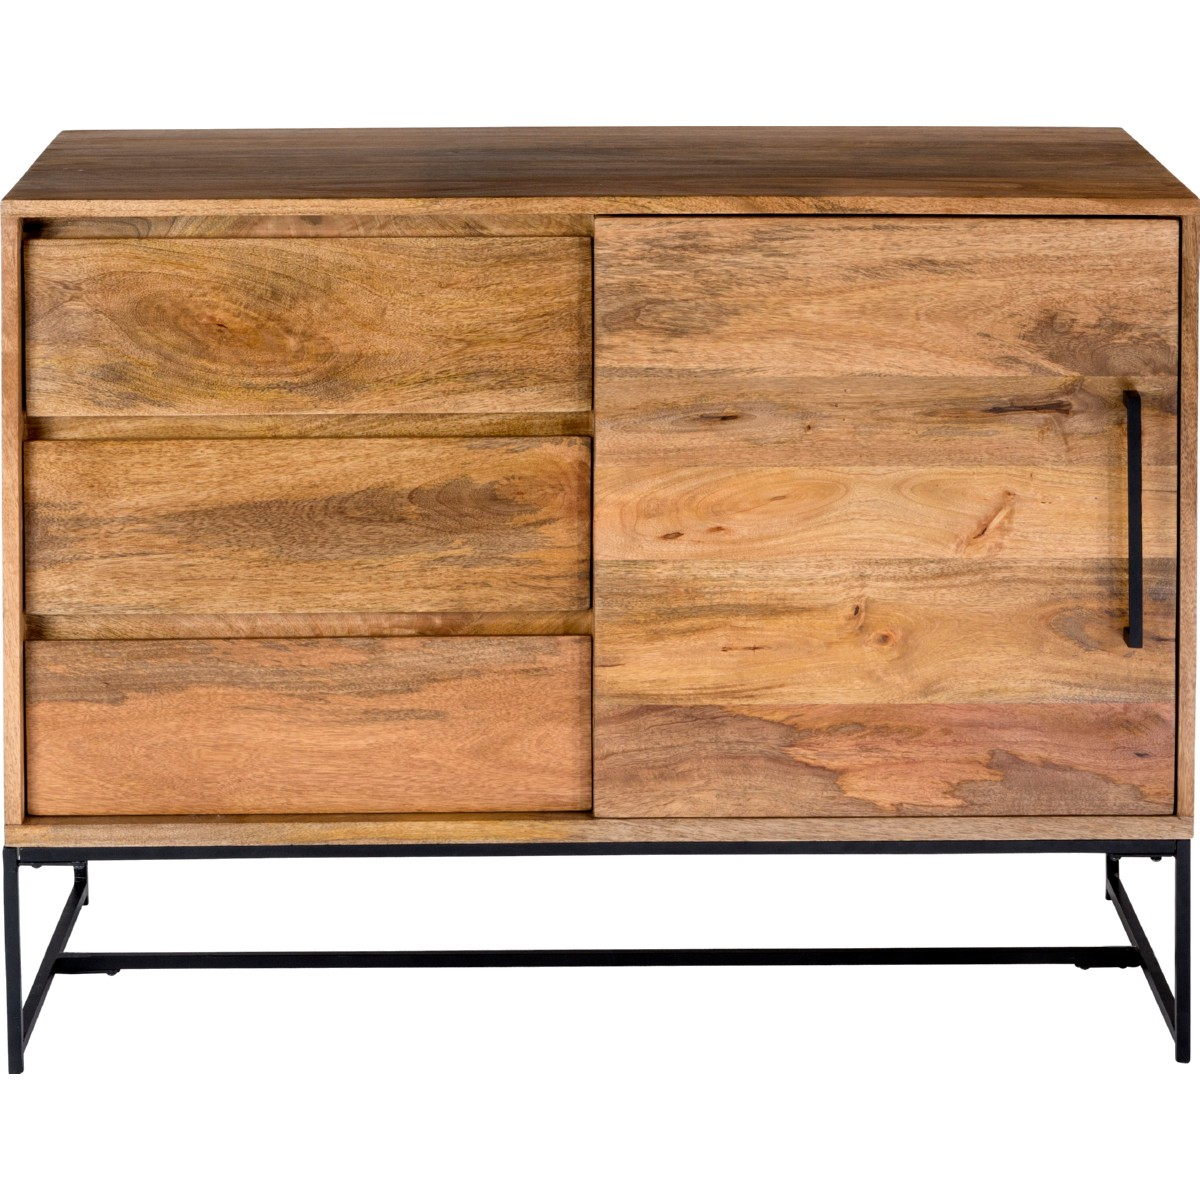 moe s home collection sr 1028 24 colvin sideboard buffet in solid rh dynamichomedecor com mango wood buffet brisbane mango wood buffet perth